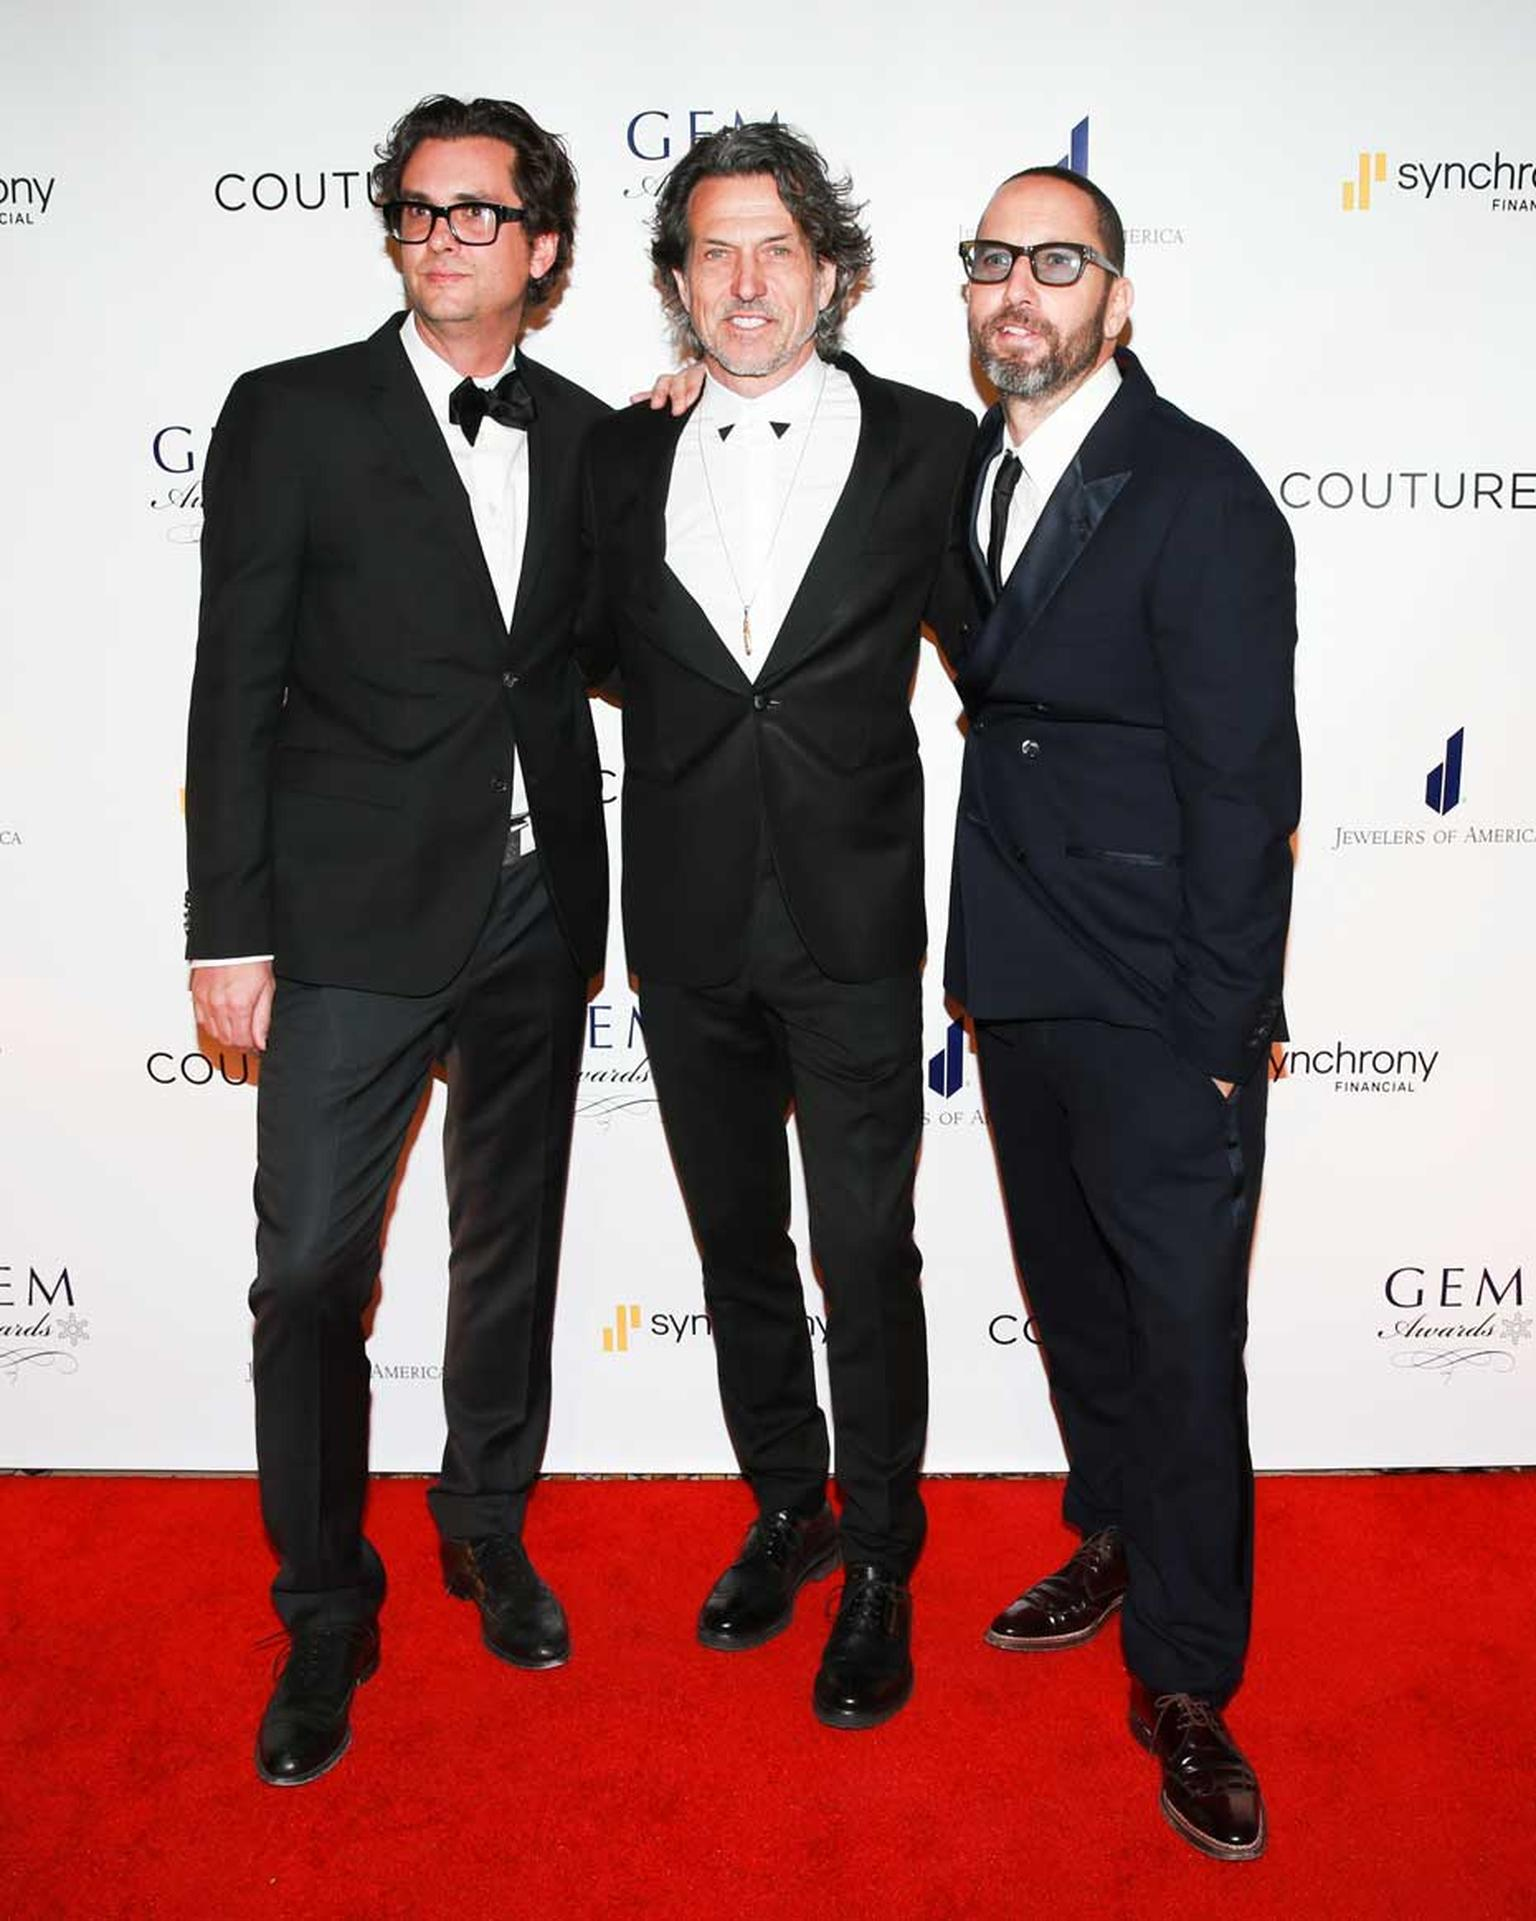 GEM Award winner Stephen Webster alongside fellow nominees in the Design category, Todd Reed, left, and Alexis Bittar, right. Image: Ben Rosser/BFAnyc.com